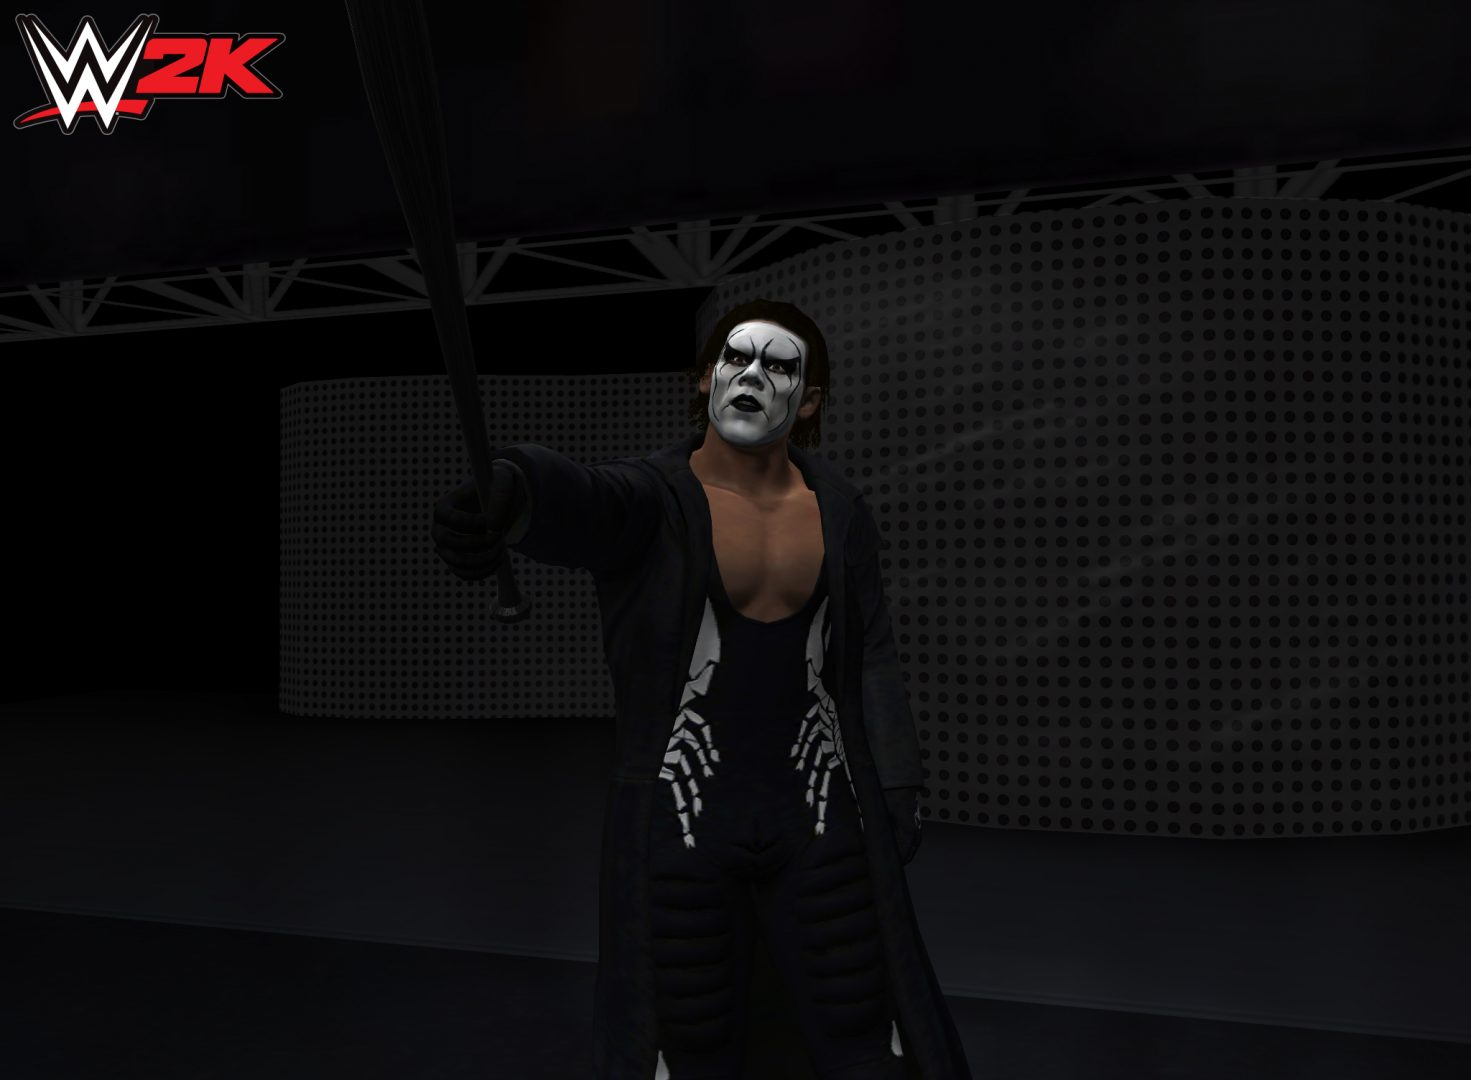 Get More Bodyslamming Action On The Go With WWE 2K